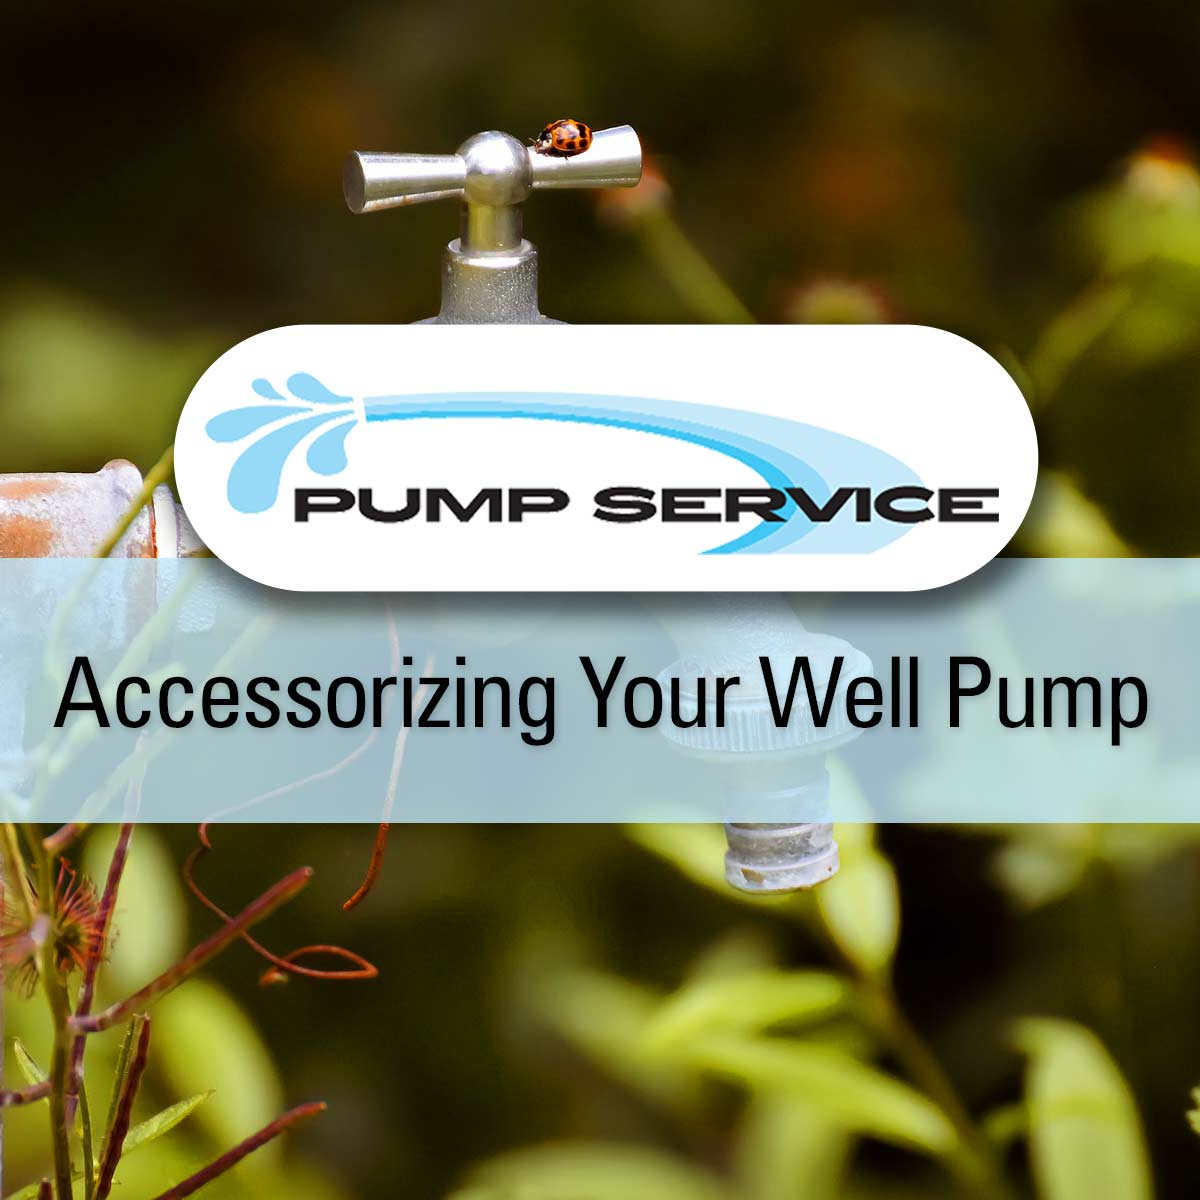 Accessorizing Your Well Pump